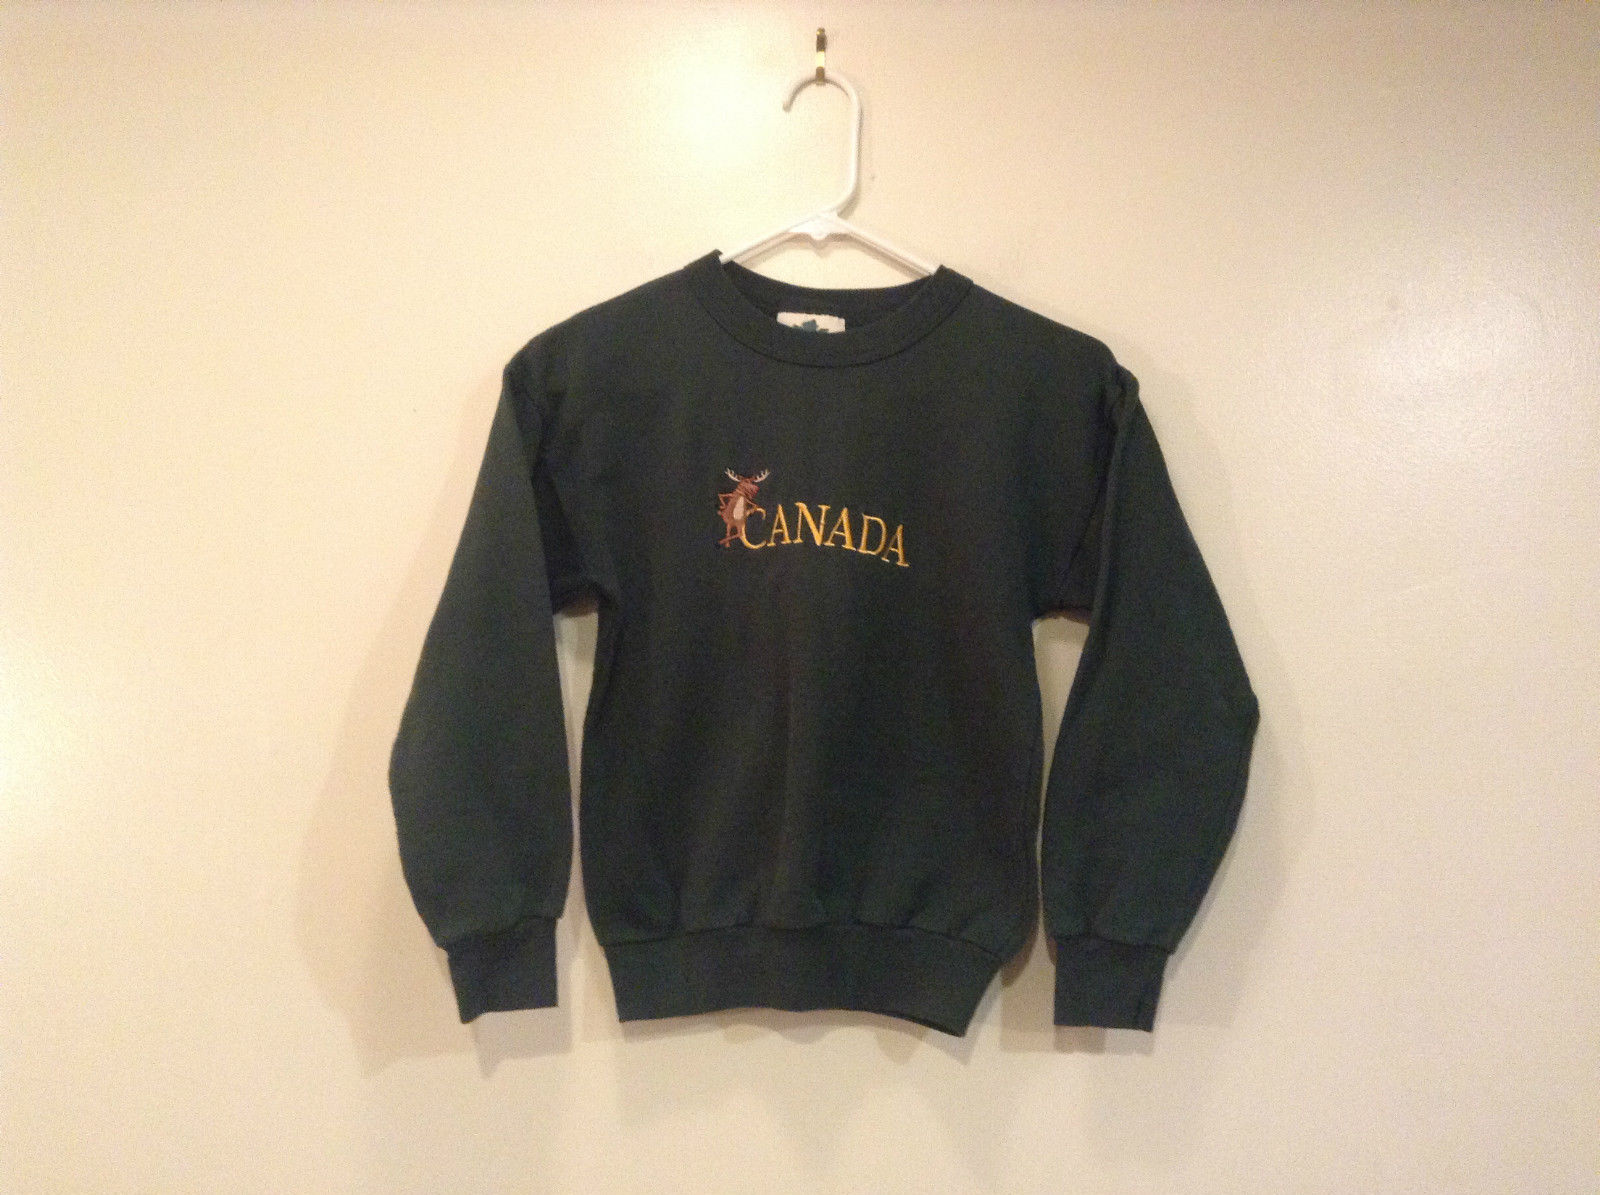 Youth Size M Quality Goods Dark Green Sweatshirt Moose and Canada Embroidery